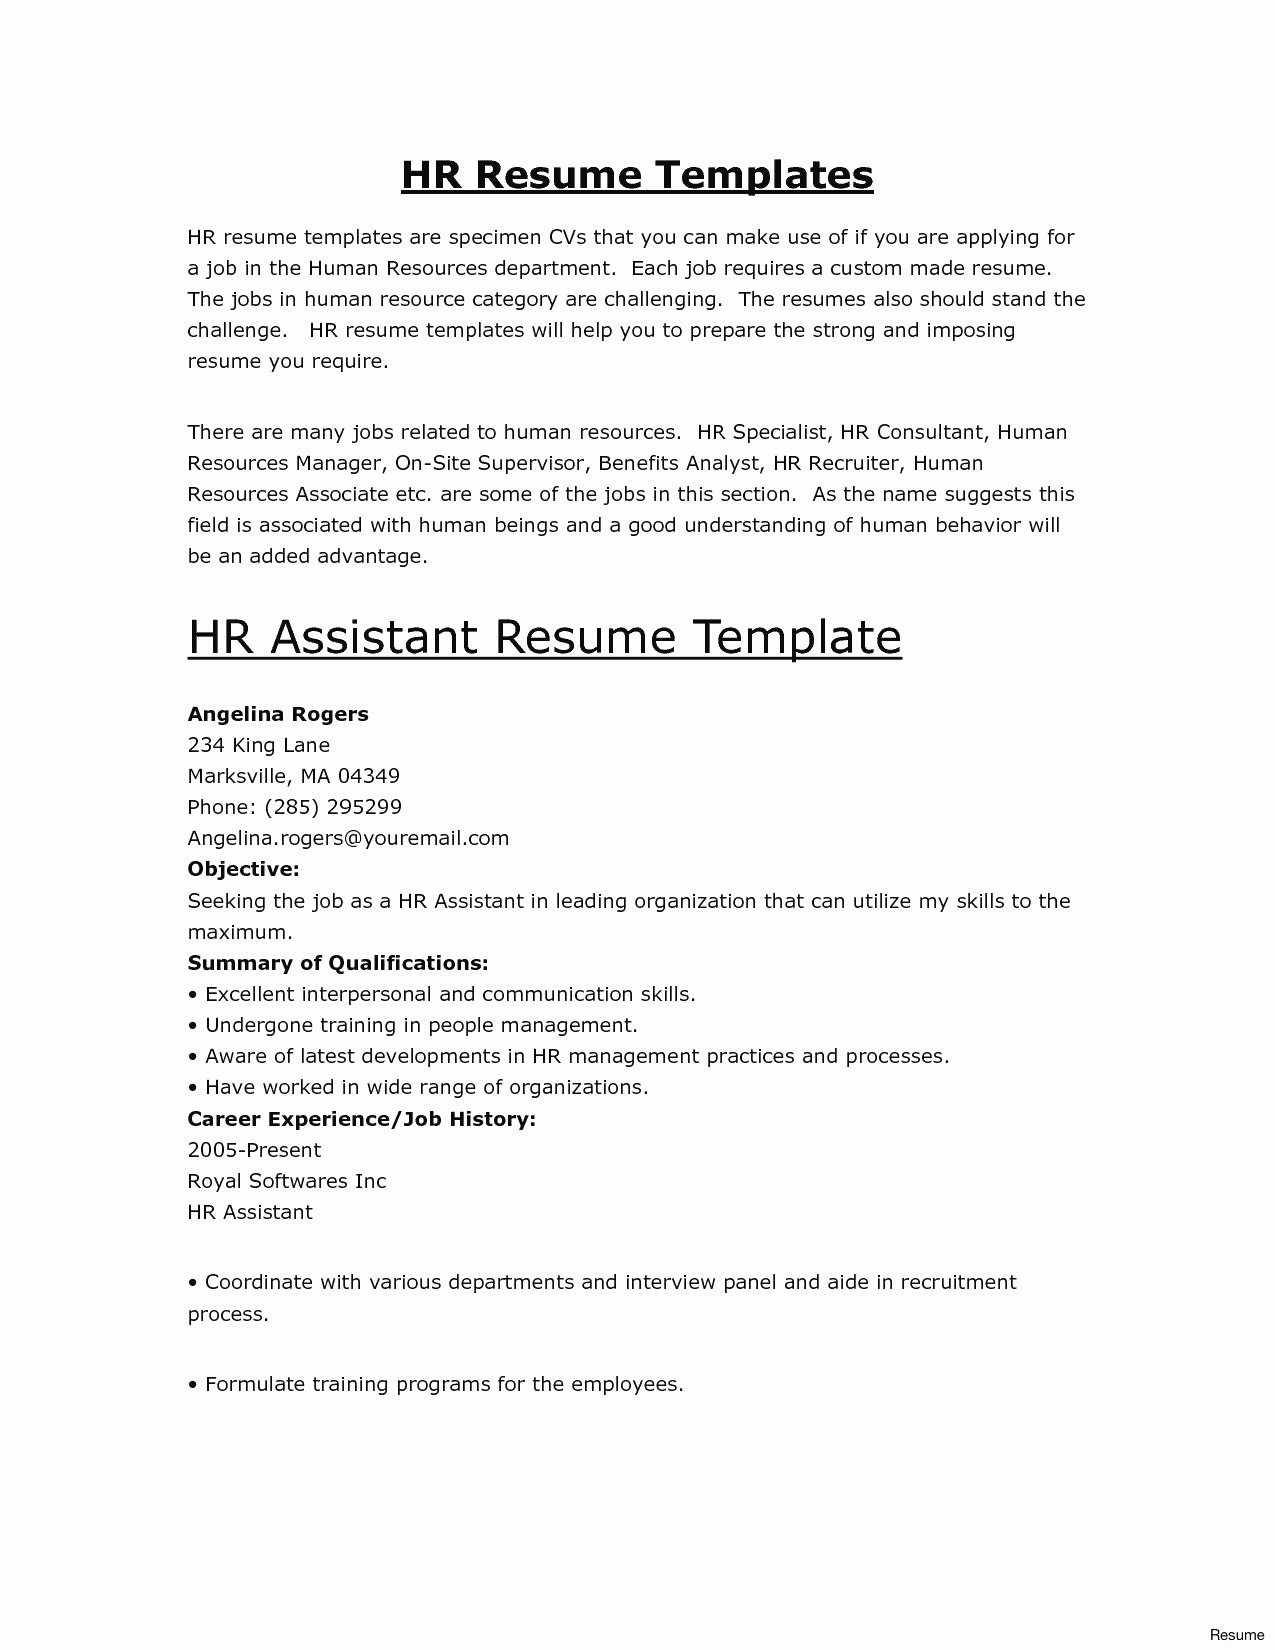 free employment verification letter template Collection-free word resume template awesome free resume template builder inspirational od specialist sample of free word 20-i